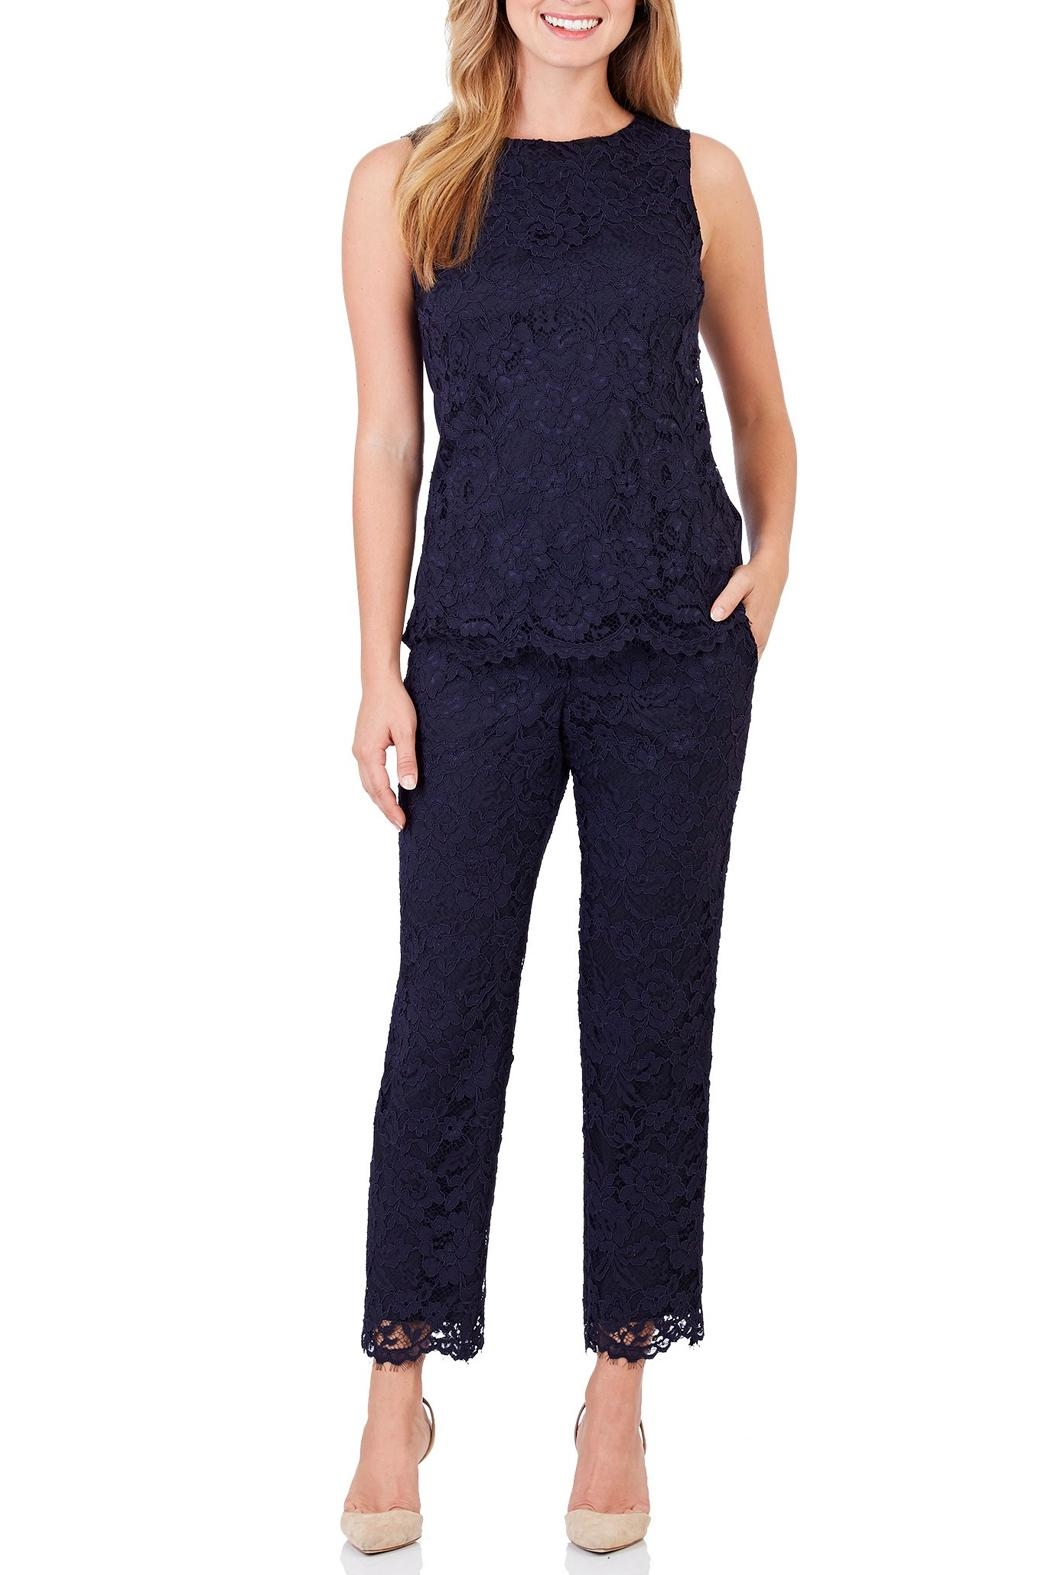 Jude Connally Rose Lace Pants - Front Cropped Image